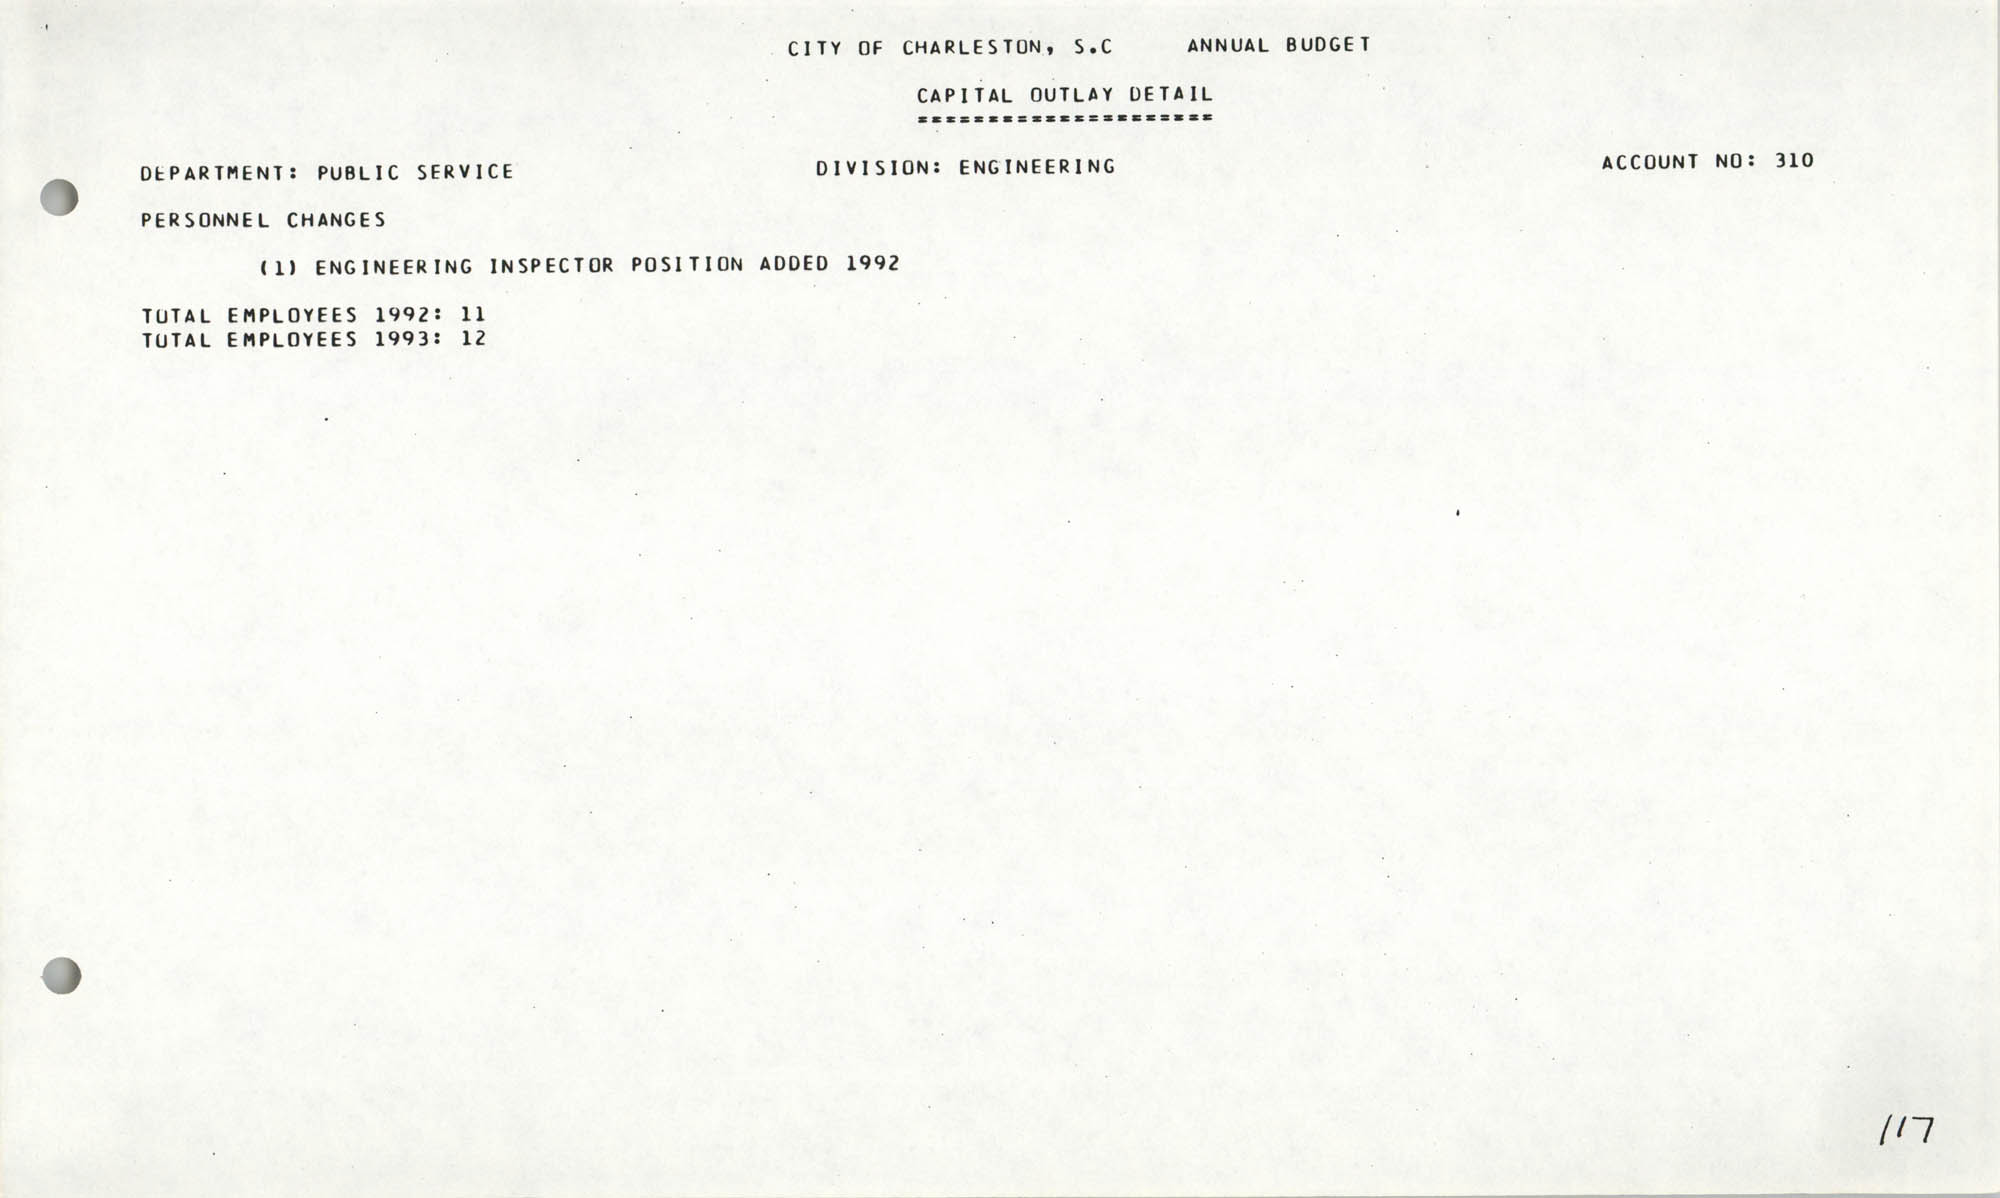 The City Council of Charleston, South Carolina, 1993 Budget, Page 117